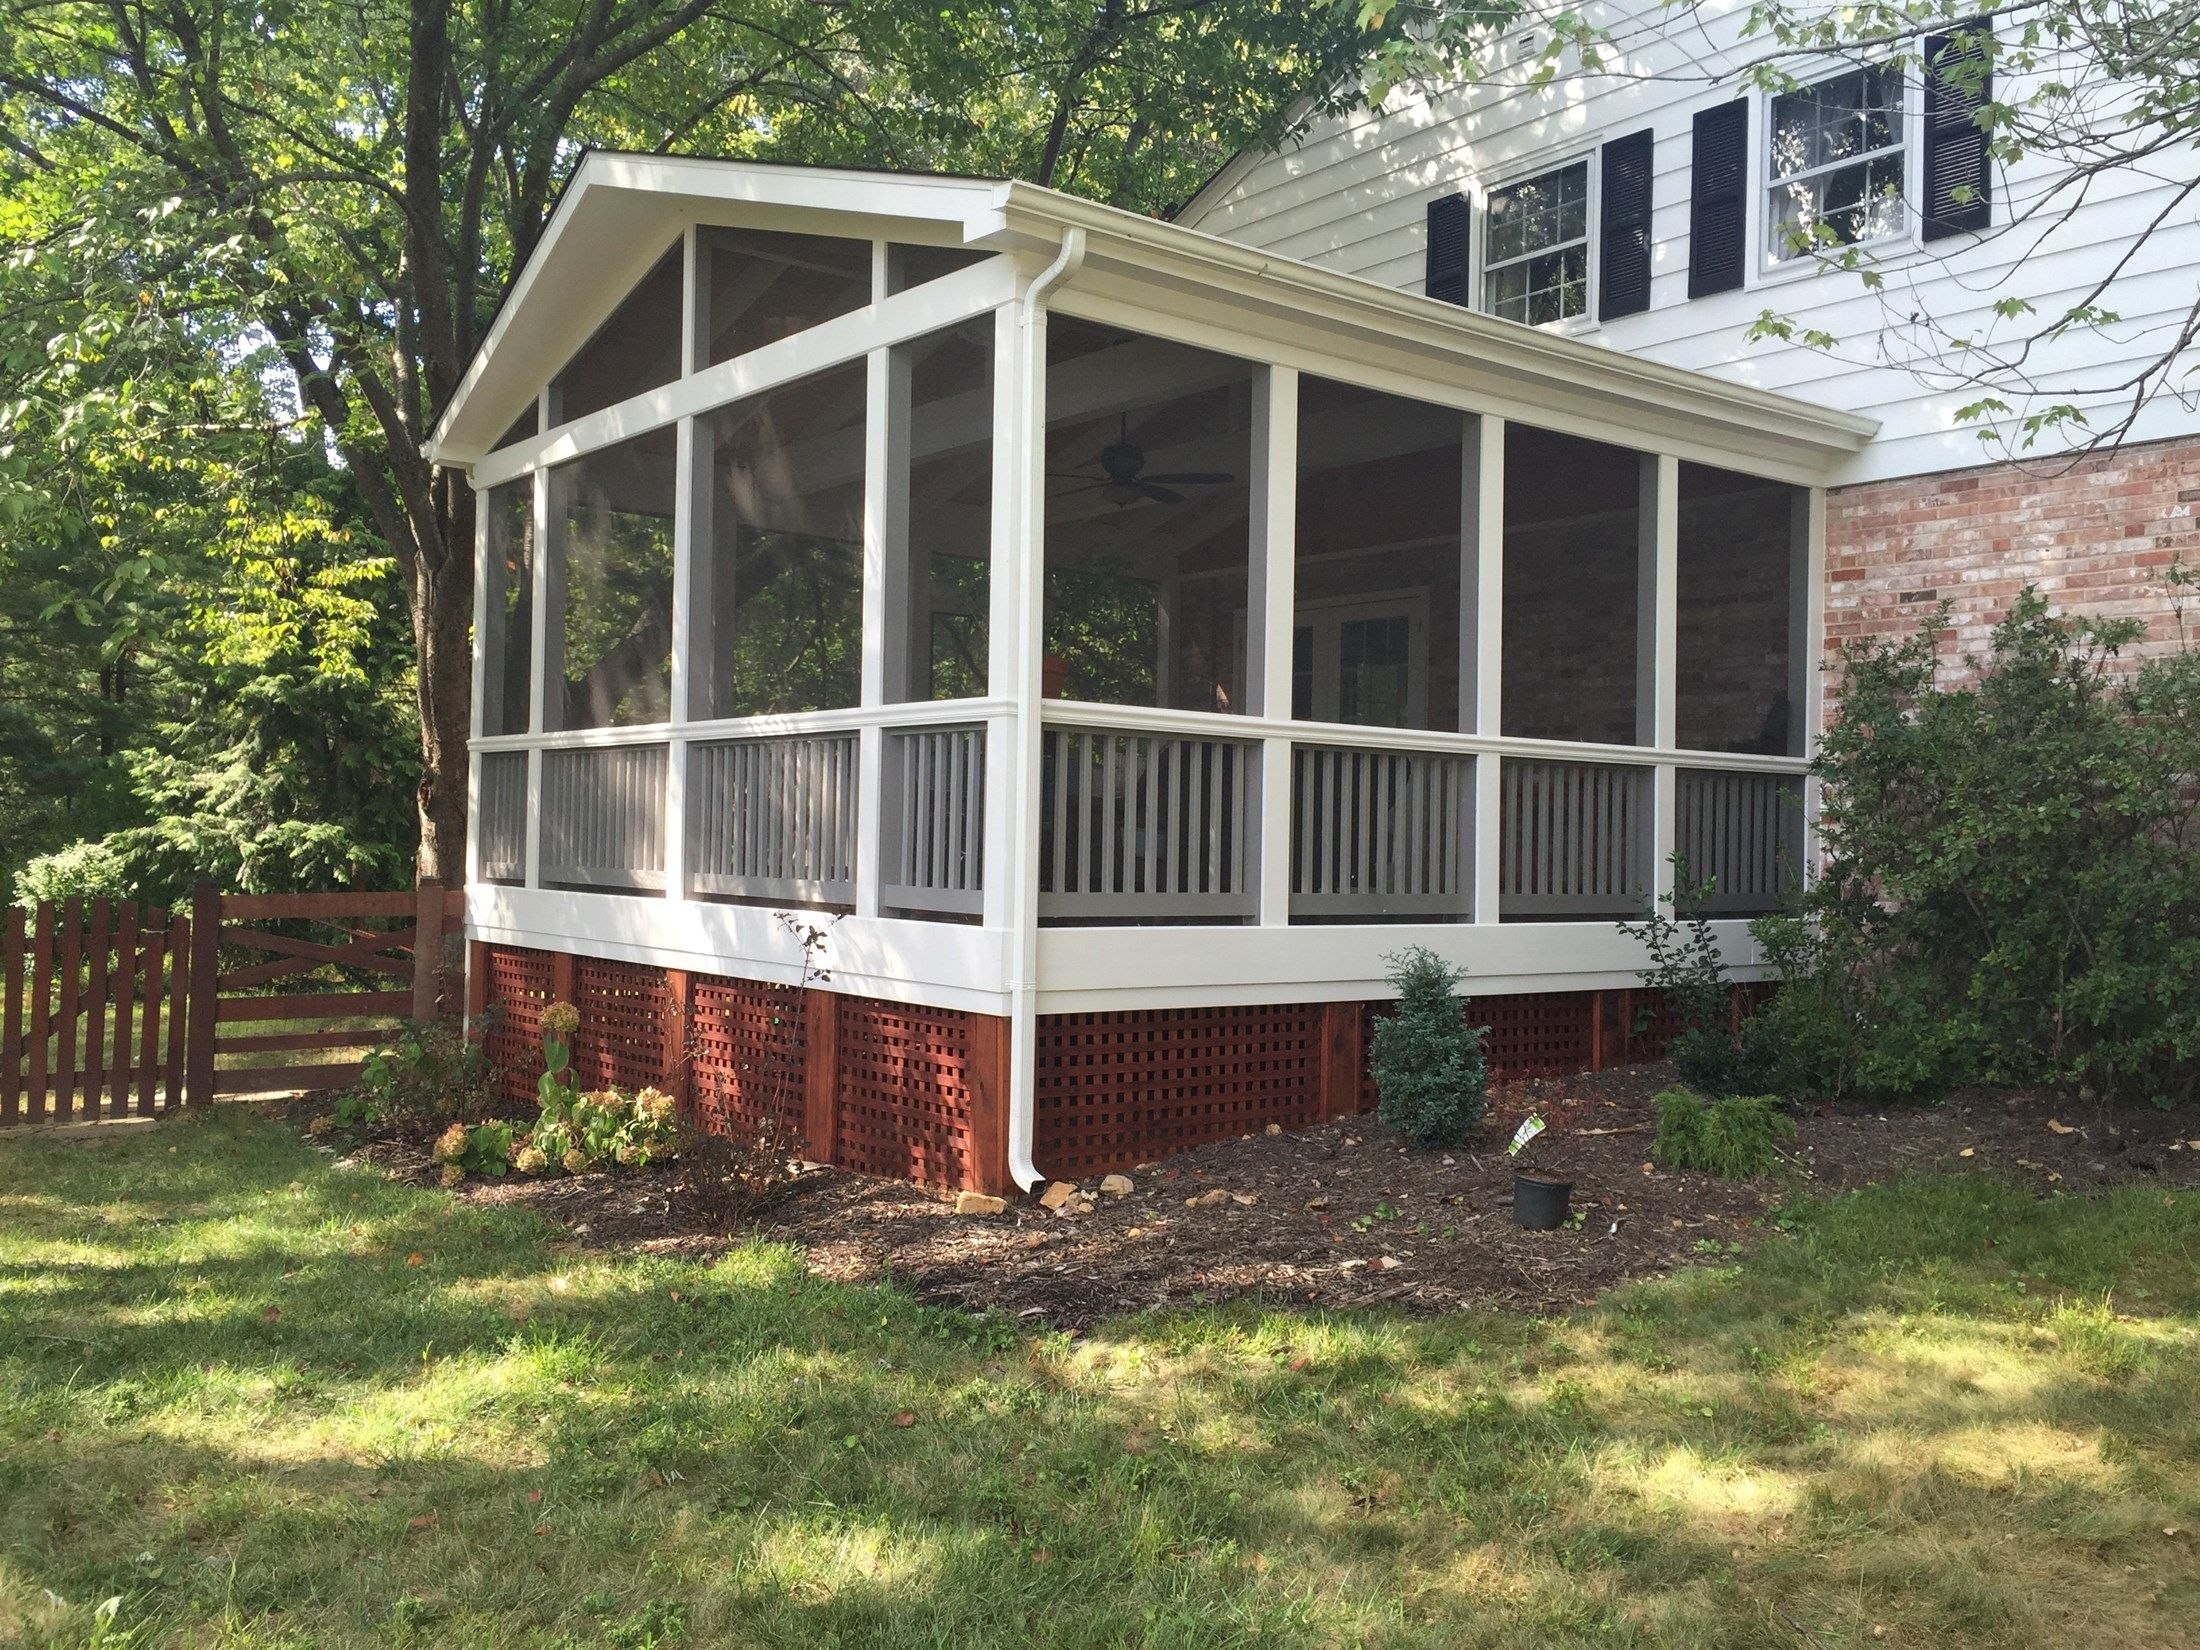 Screen porch, gable roof - Picture 2090